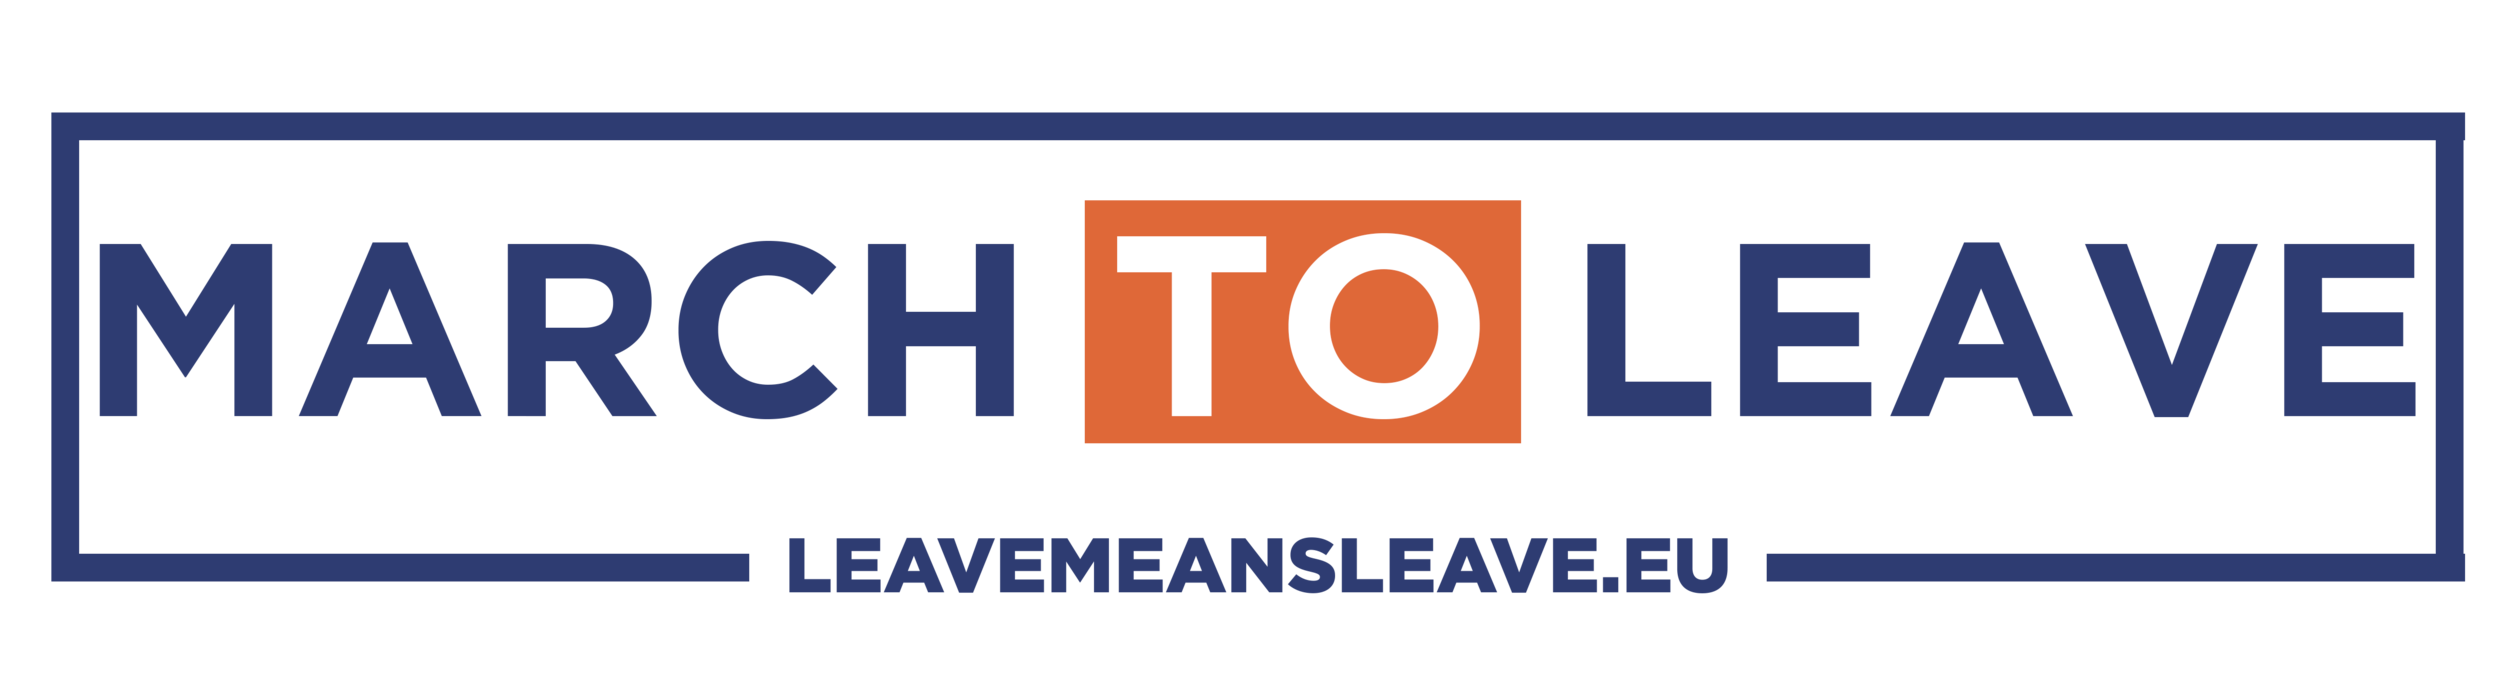 March2leave logo.png